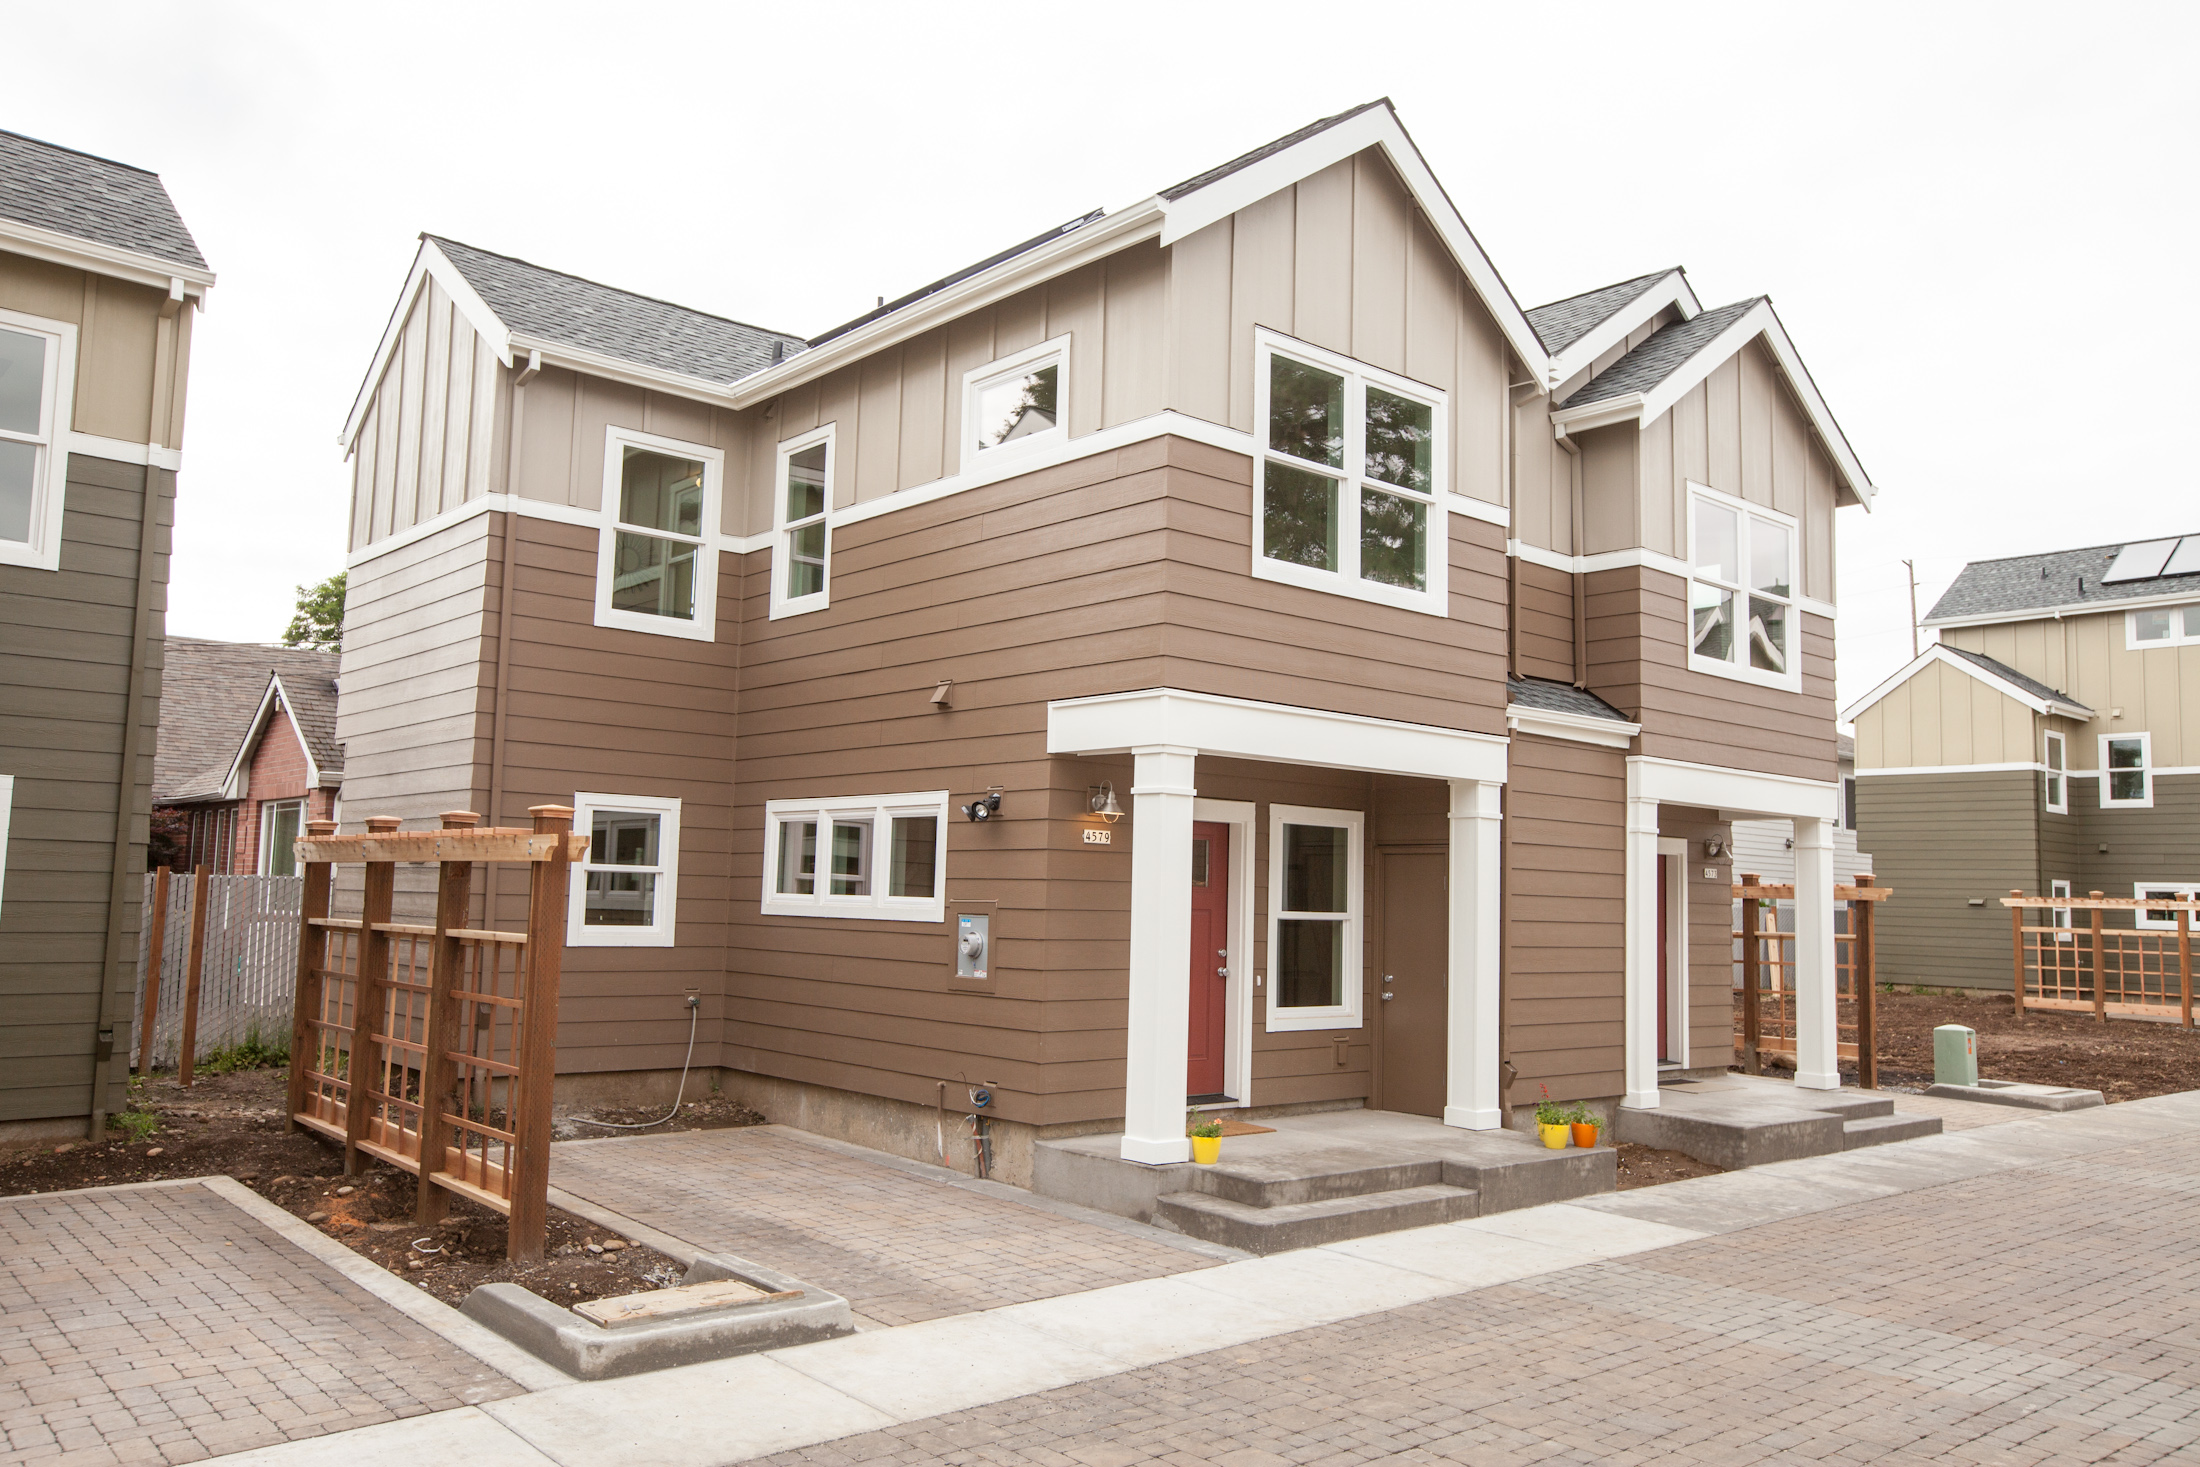 Affordable Green Home - affordable-courtyard-housing-svaboda-court1_Good Affordable Green Home - affordable-courtyard-housing-svaboda-court1  Collection_475966.jpg